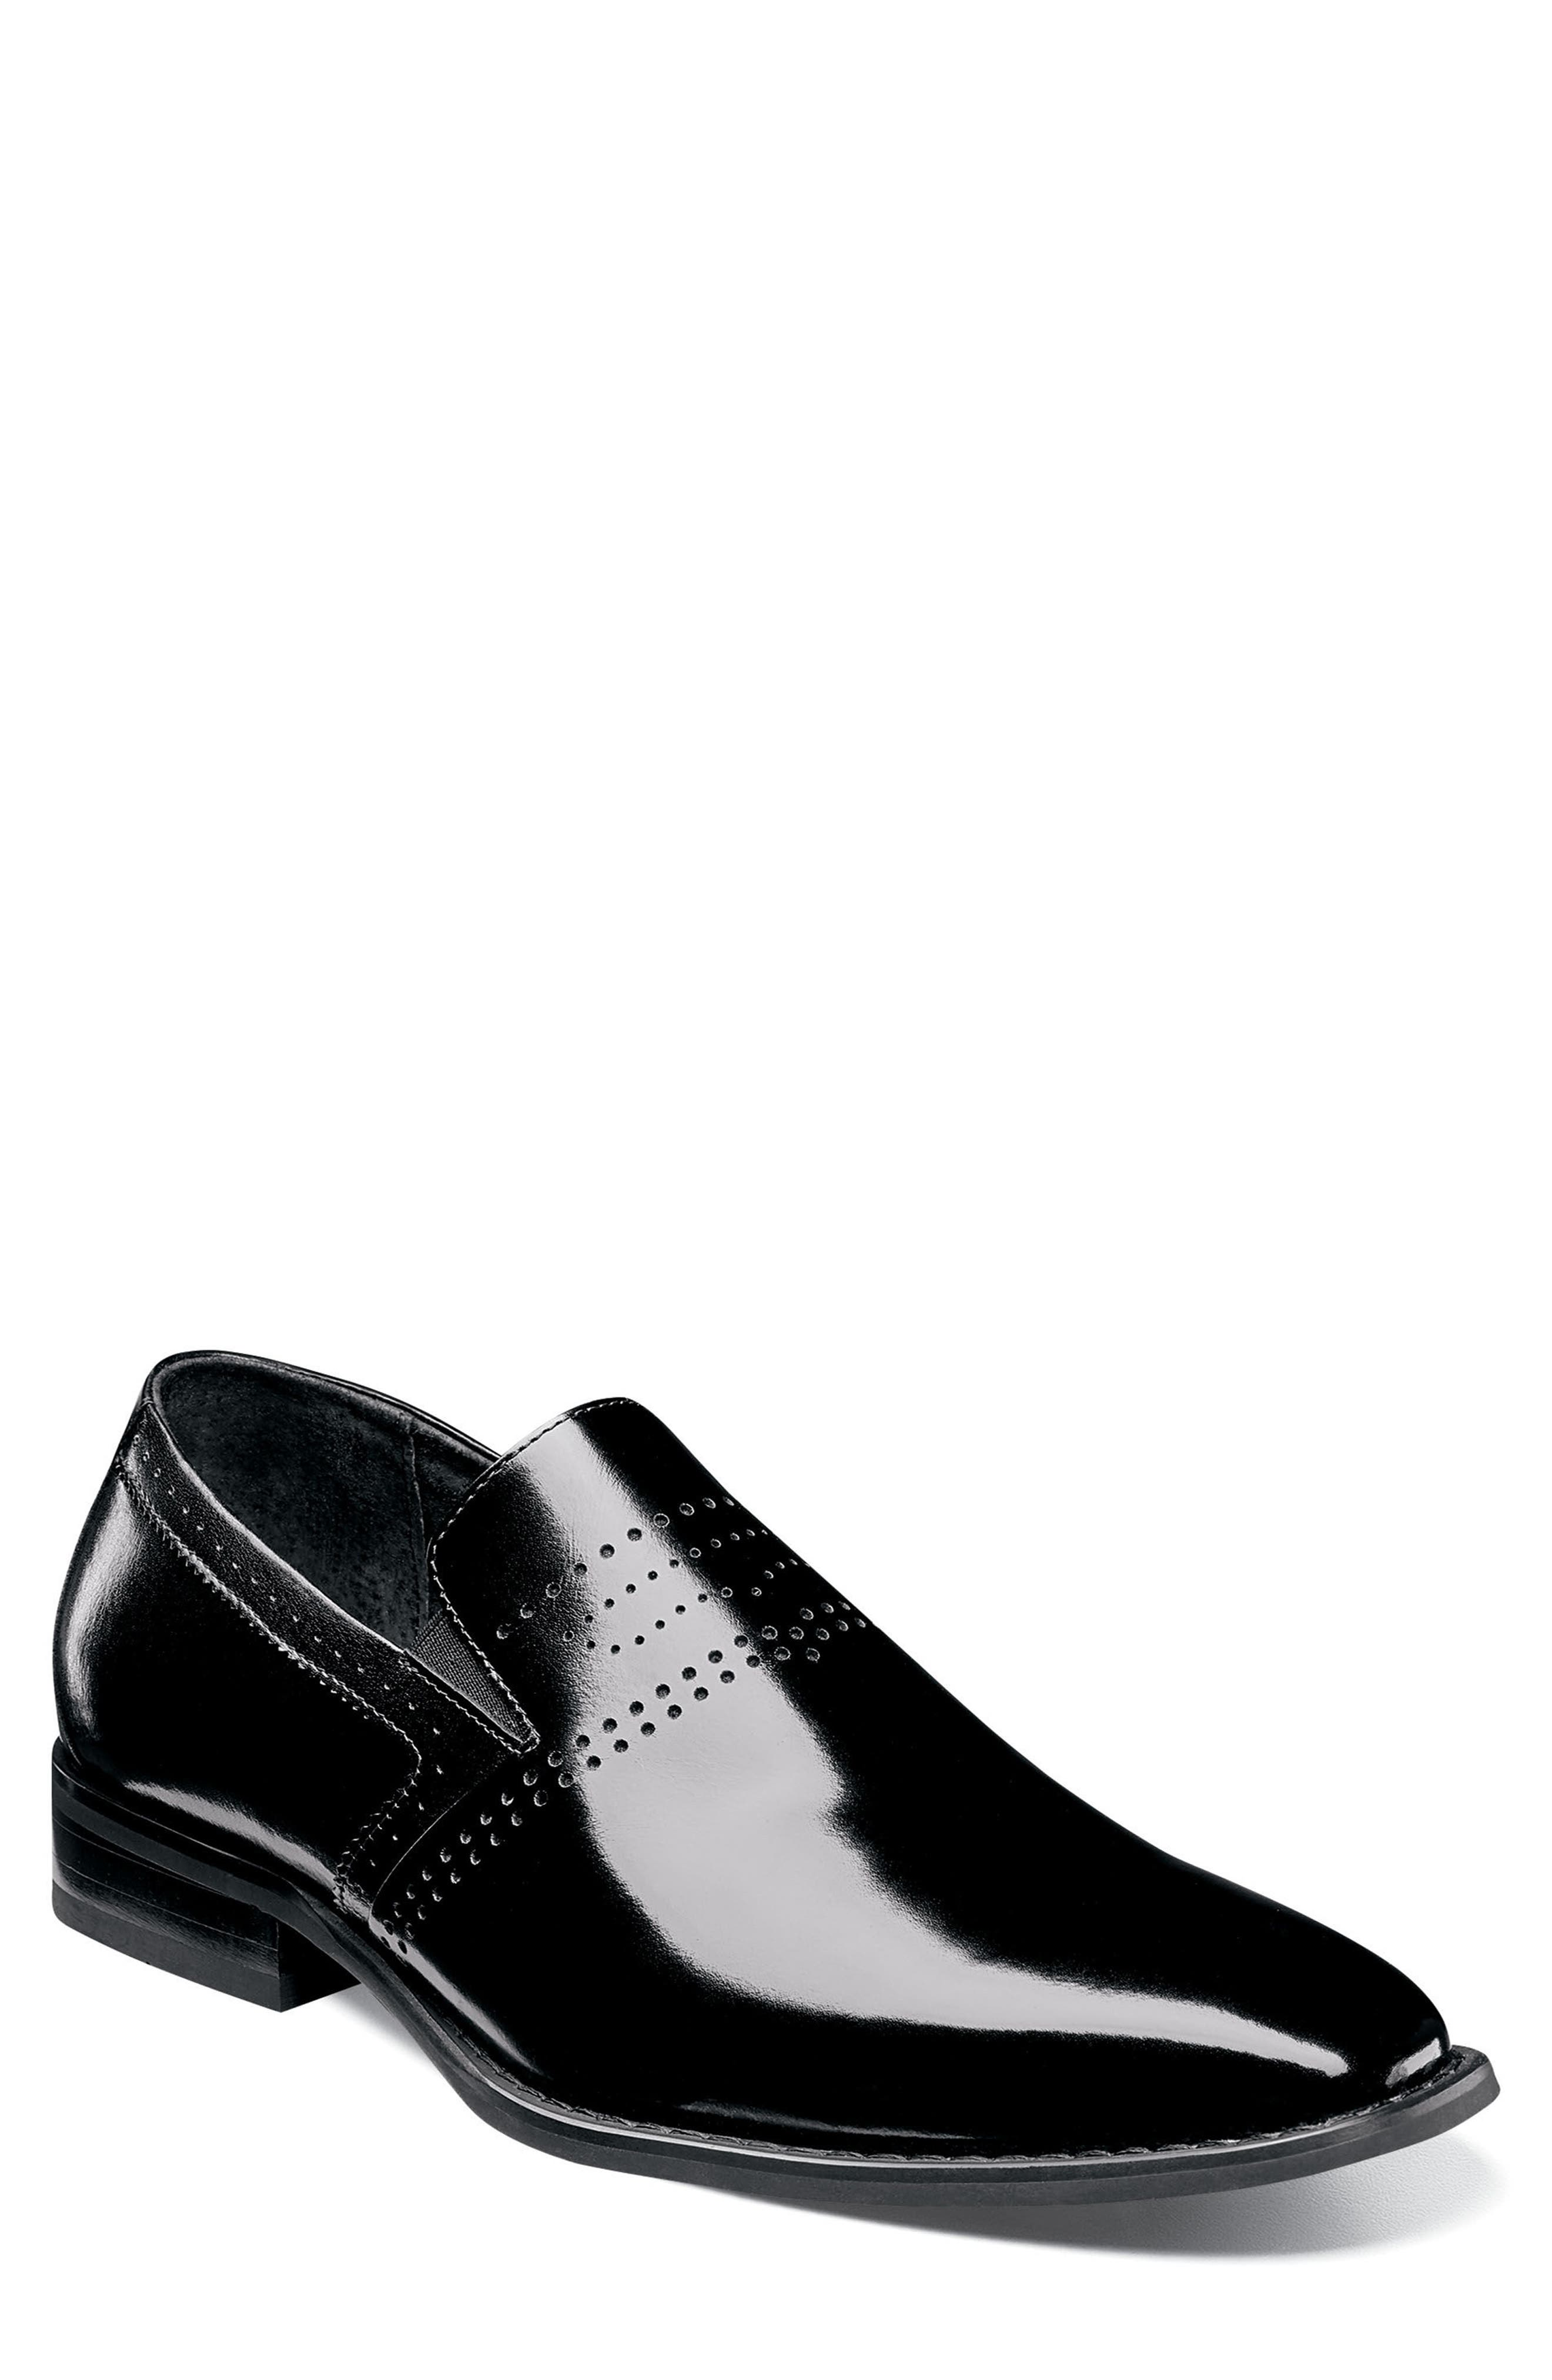 Saunders Perforated Venetian Loafer,                             Main thumbnail 1, color,                             BLACK LEATHER